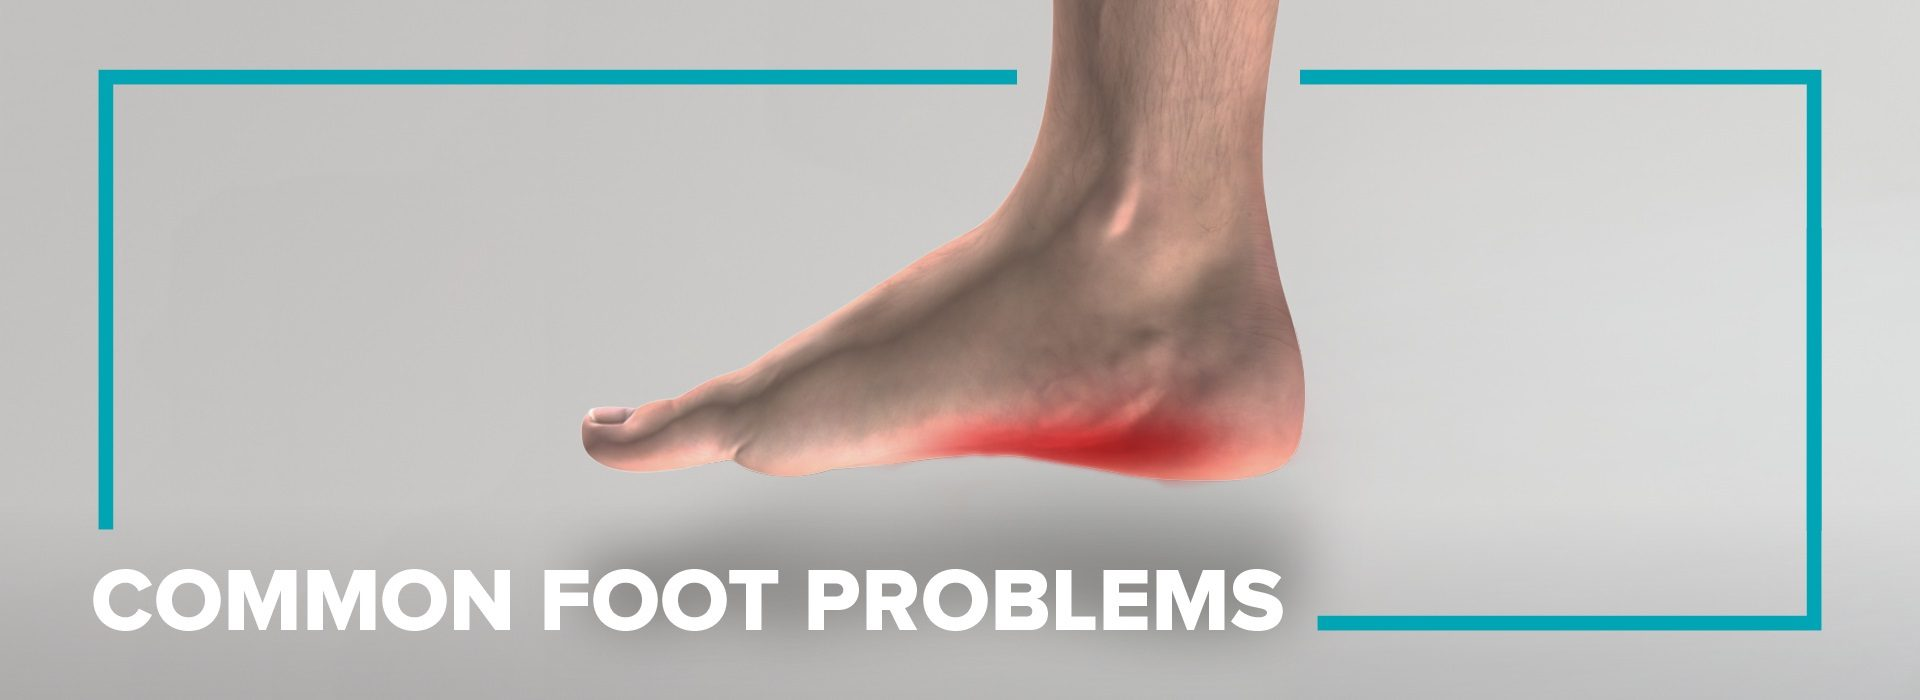 FootBalance Custom insoles help foot pain and common foot